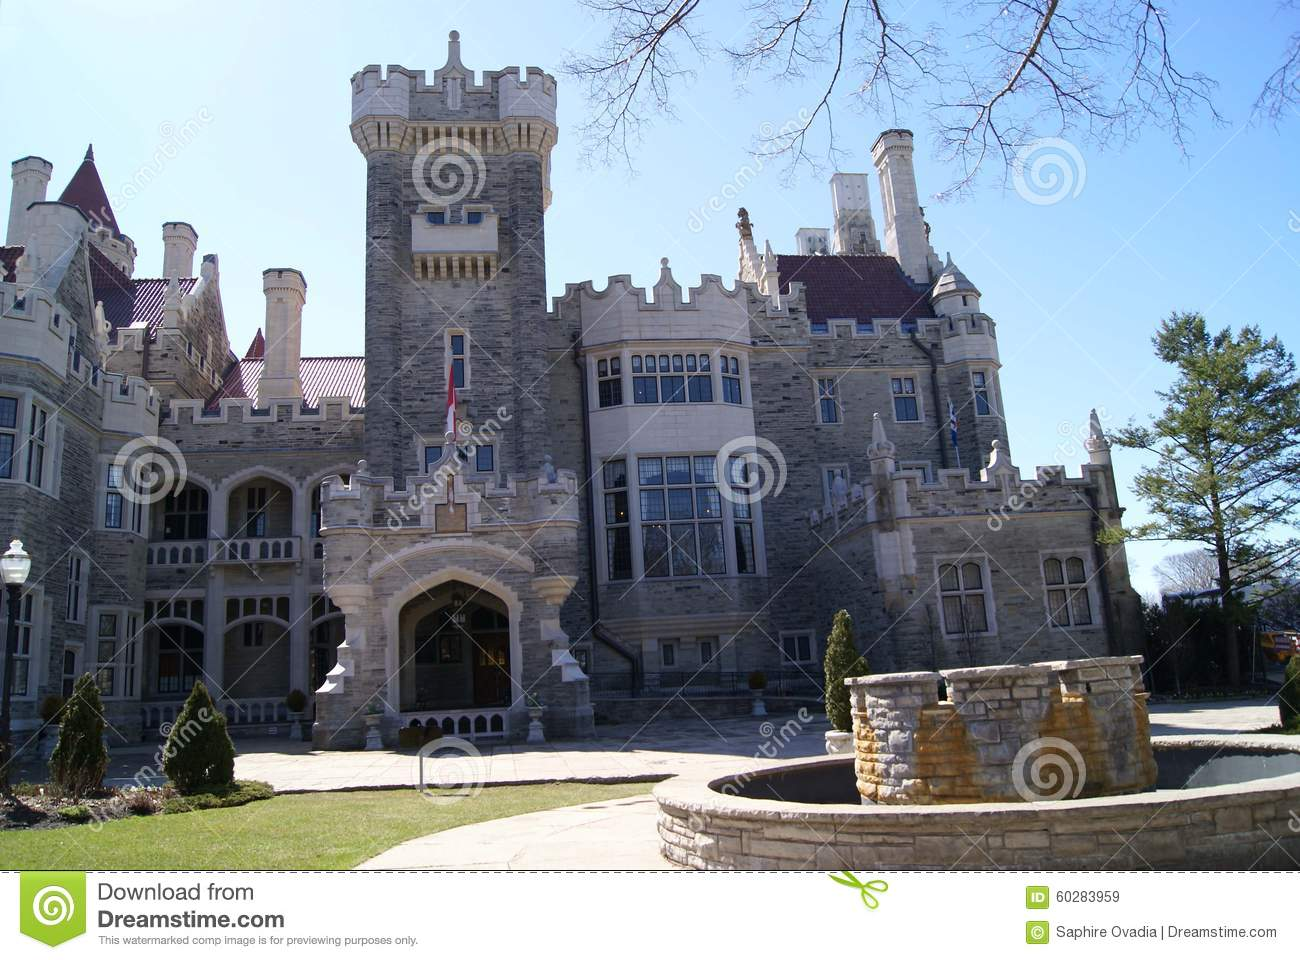 A Gothic Revival Style Castle Museum And Landmark In Midtown Toronto Ontario Canada